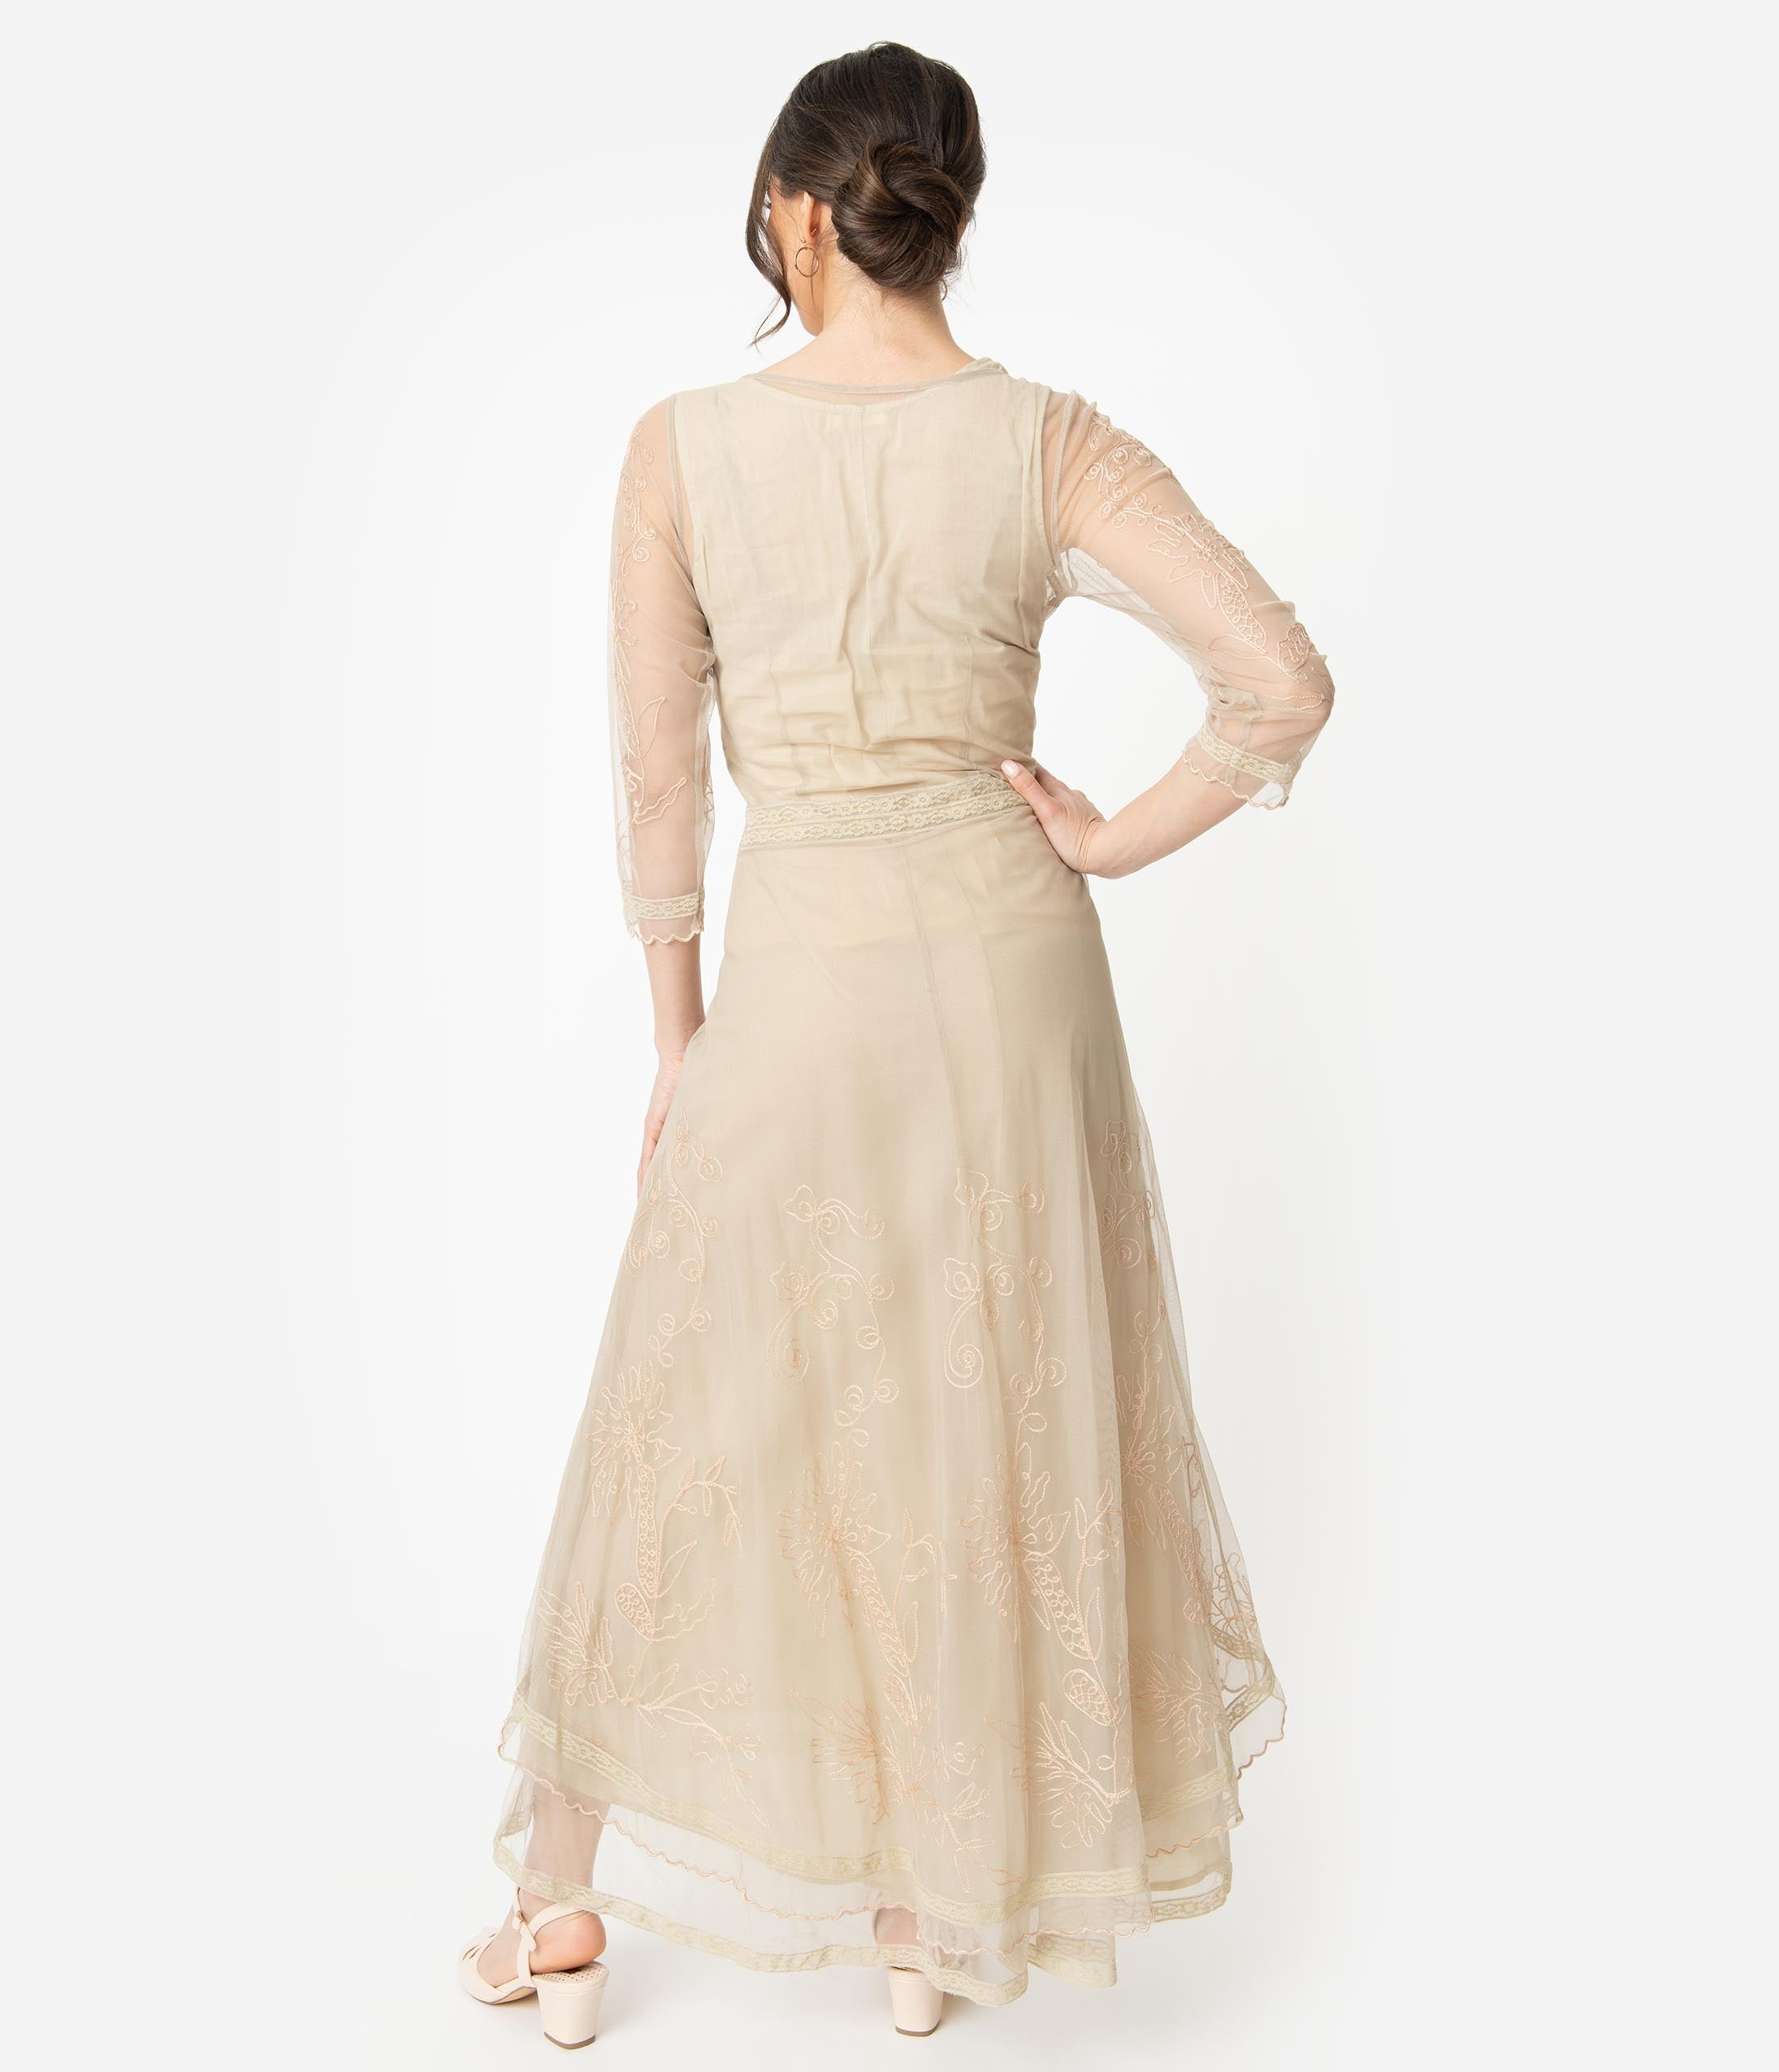 fbf9e406849 Vintage Cream Embroidered Tulle Downton Abbey Edwardian Tea Party Dress